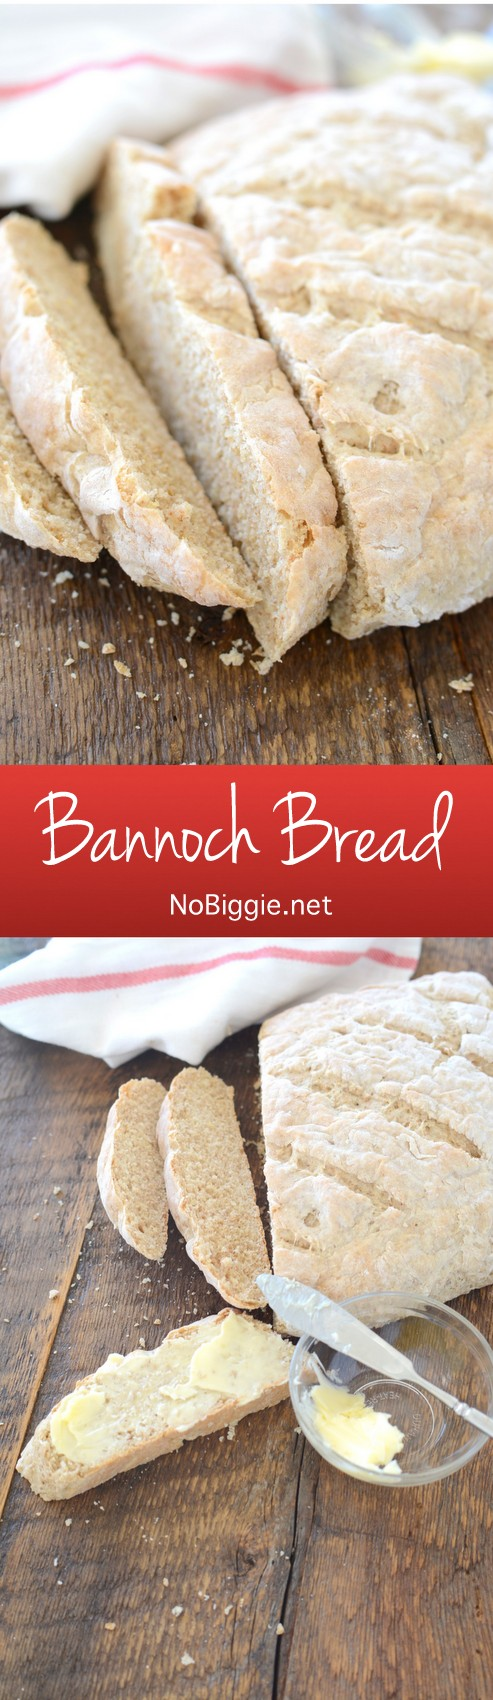 Bannoch Bread - It\'s so easy...and so delicious! #bread #bannochbread #breadrecipes #homemadebread